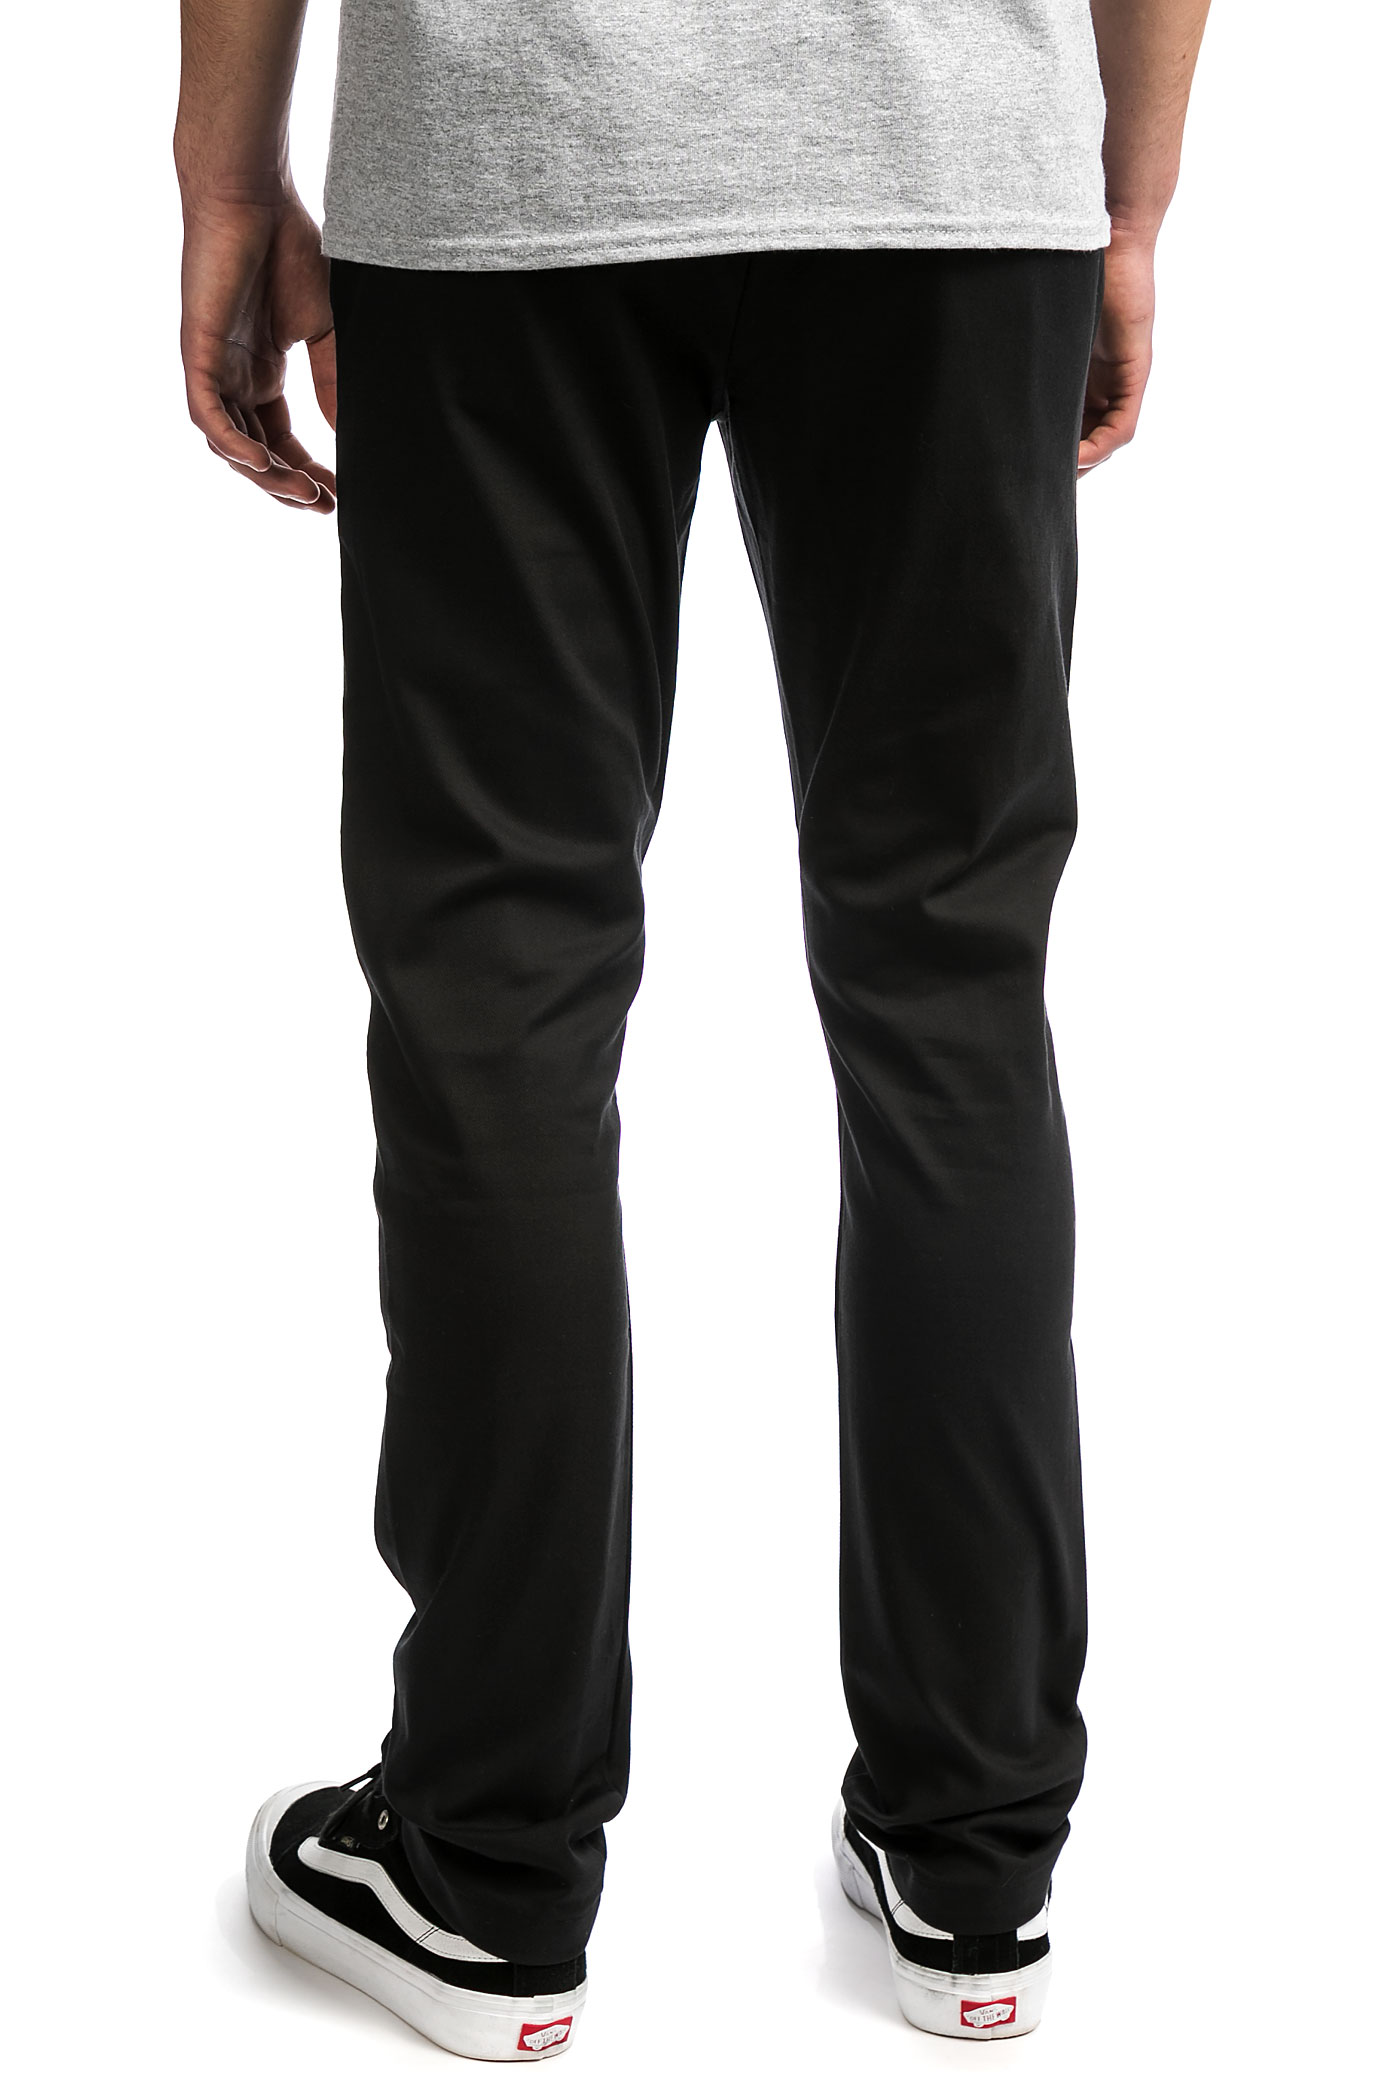 Dickies Pants for Men. Dickies offers a wide variety of men's work pants suited for several occasions and occupations. Dickies manufactures work pants for employees in a large number of different industries. What styles of Dickies pants are available? Dickies makes pants in a .